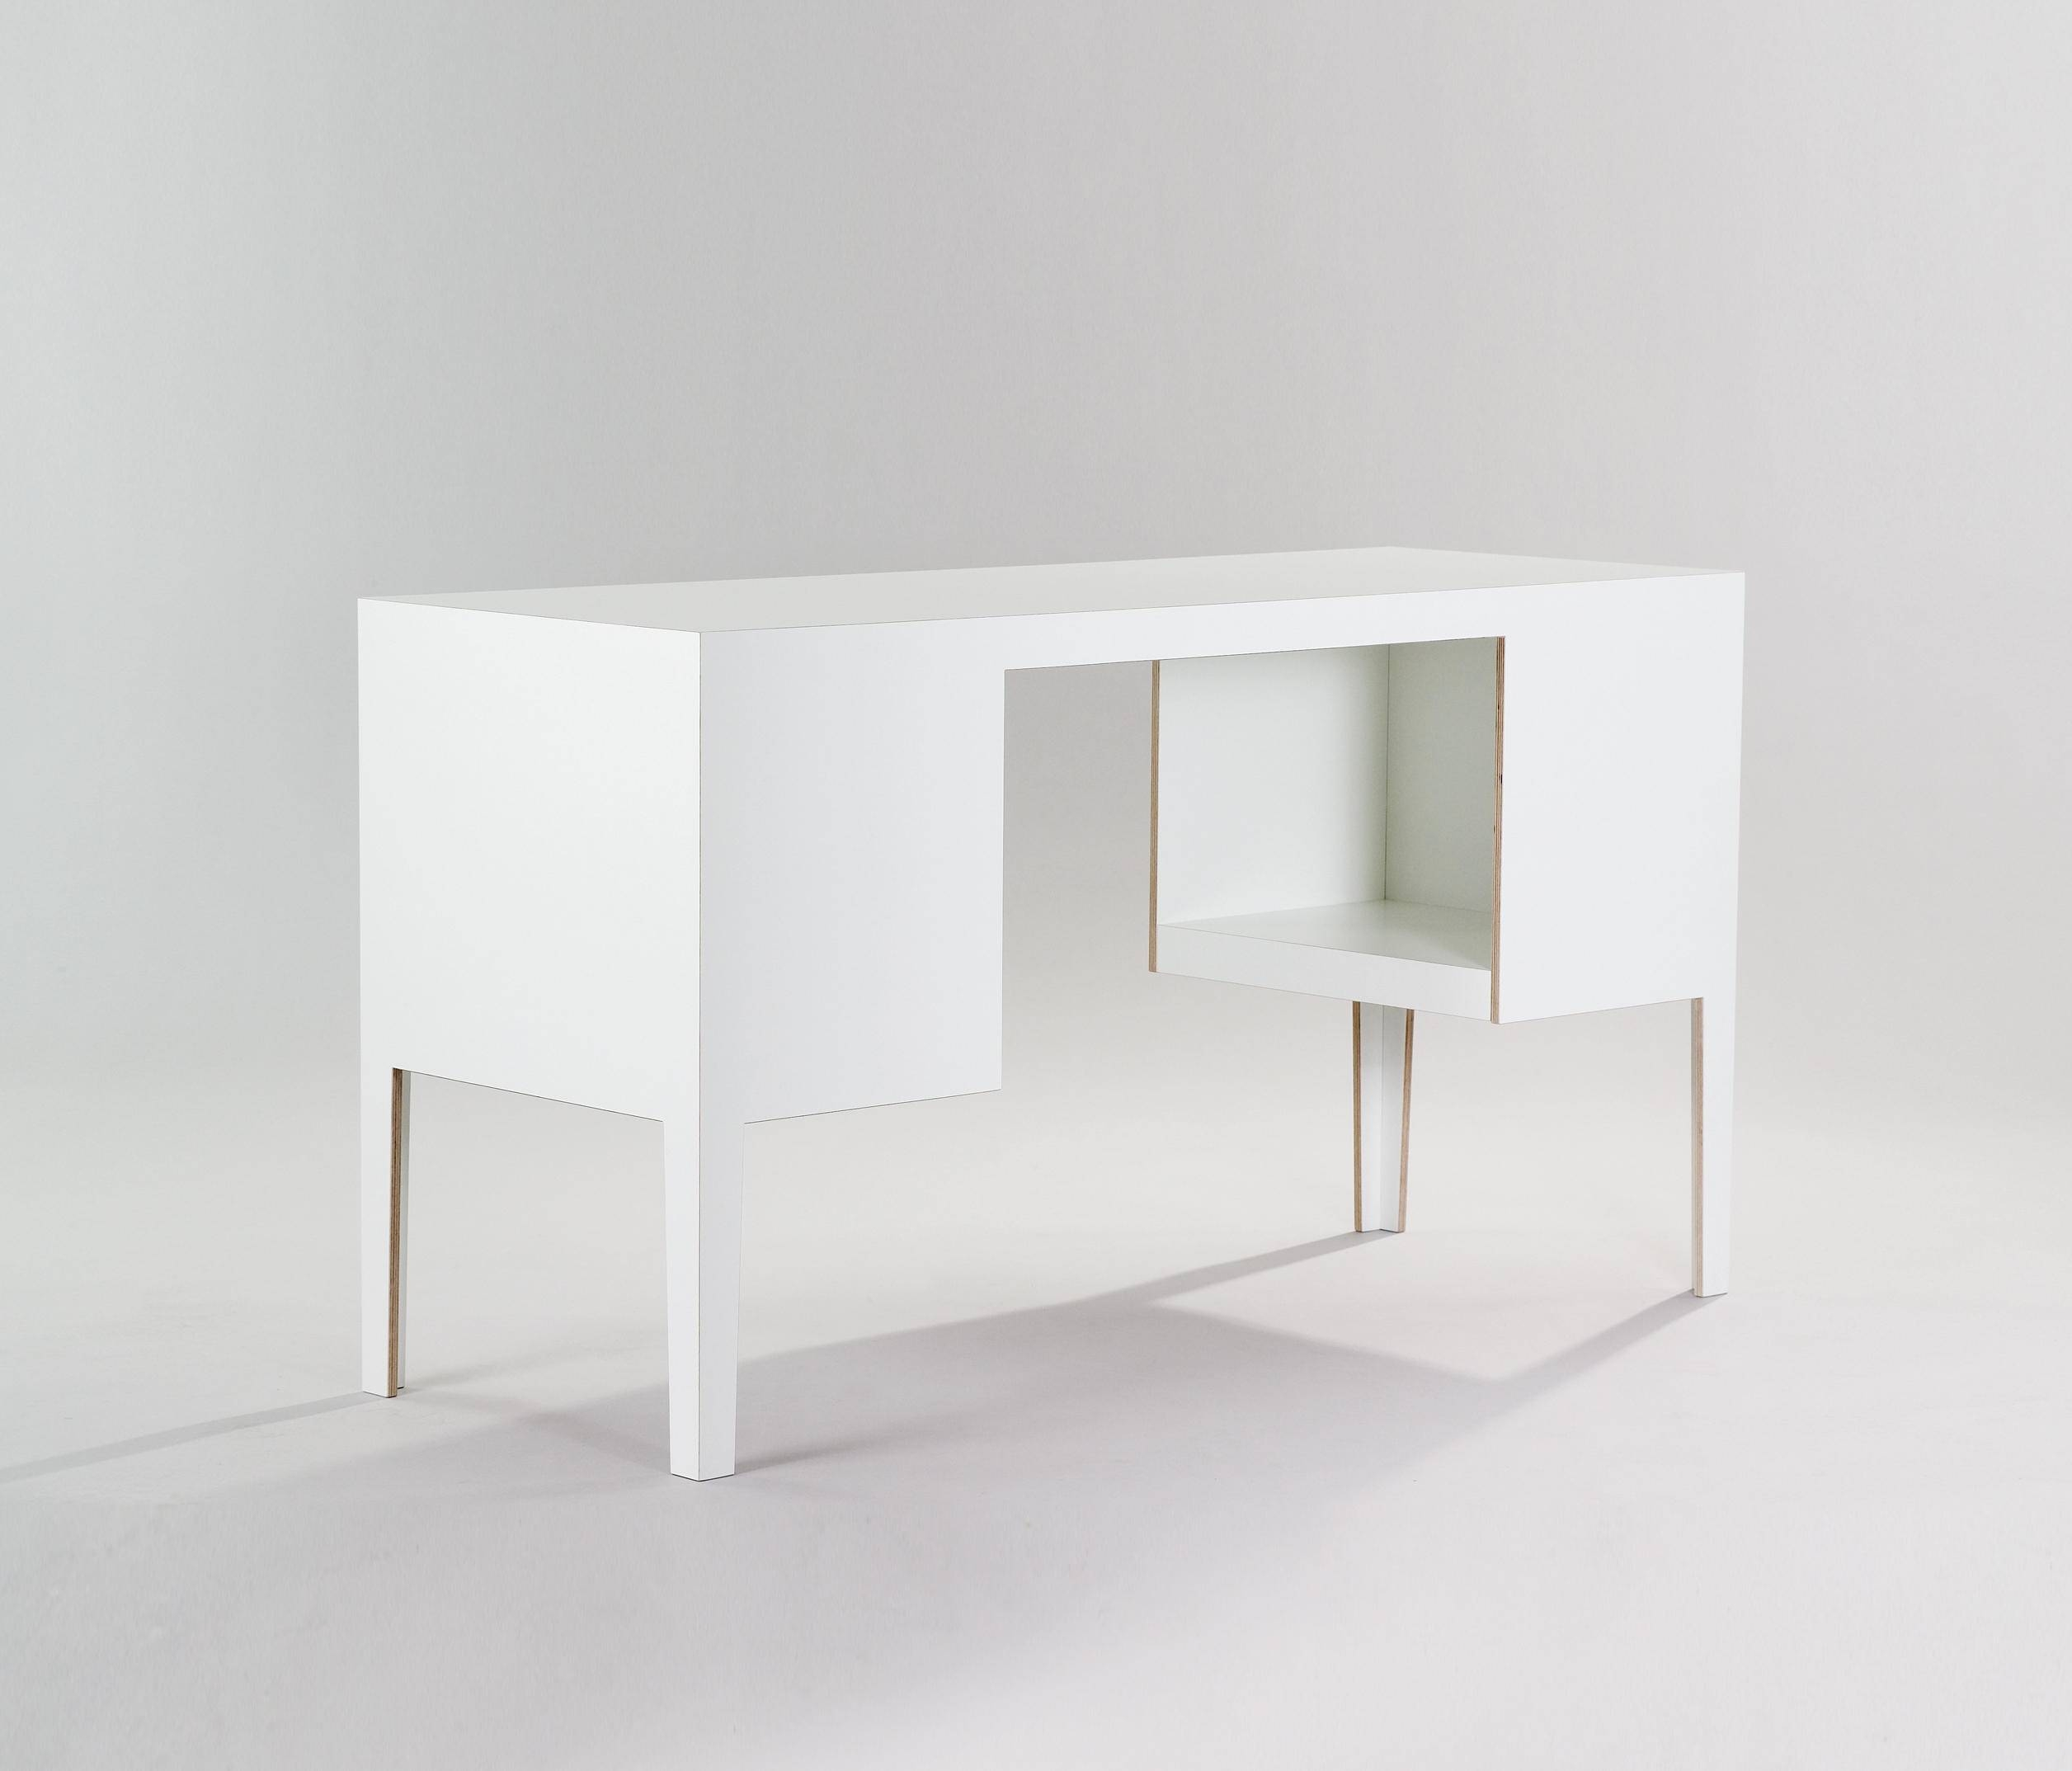 Desk - Sideboards From Morgen | Architonic regarding Desk Sideboards (Image 6 of 30)